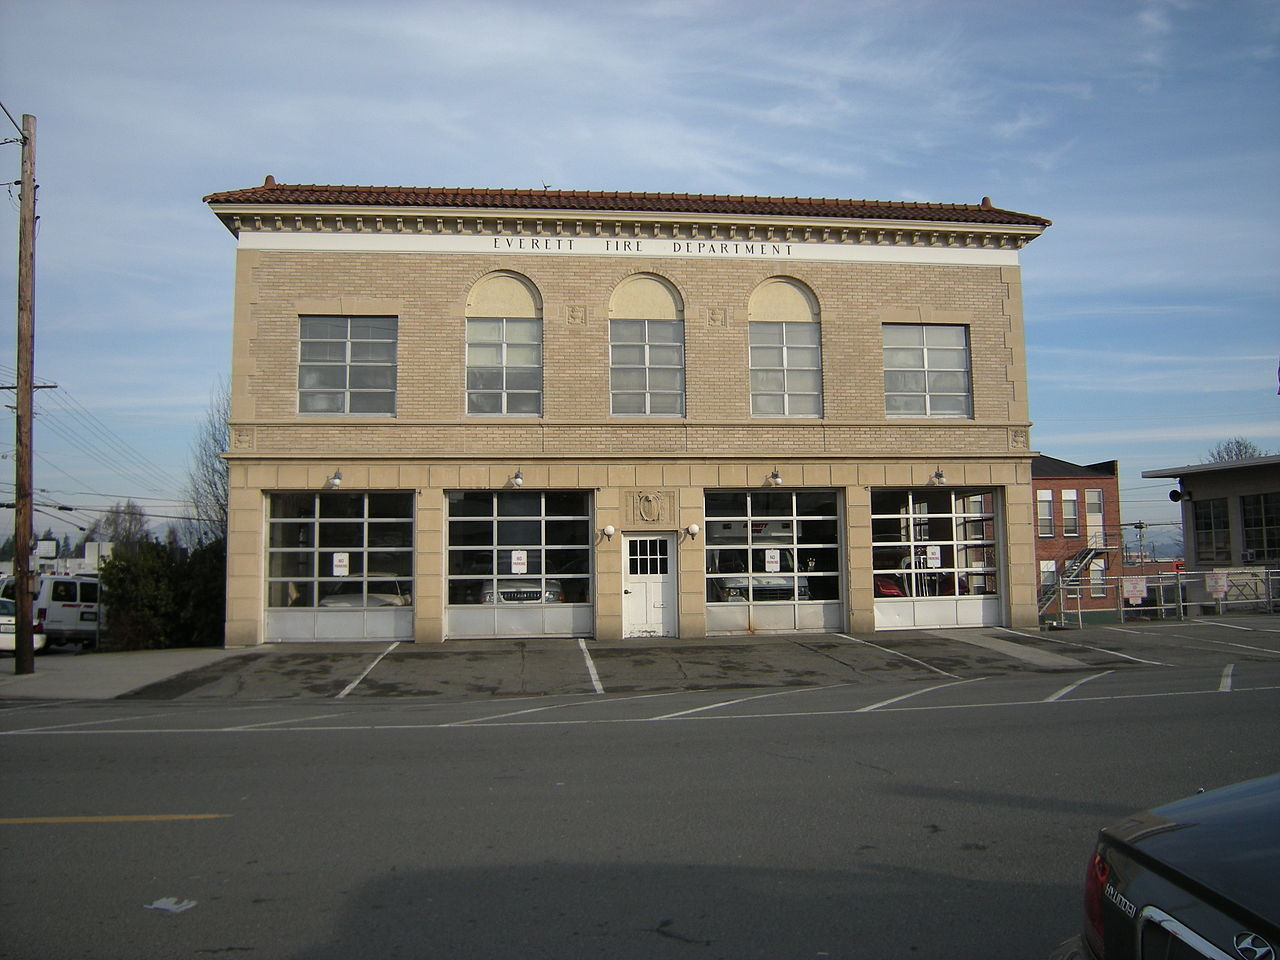 Everett Fire Station No. 2 was built in 1925 and functions today as a training facility.